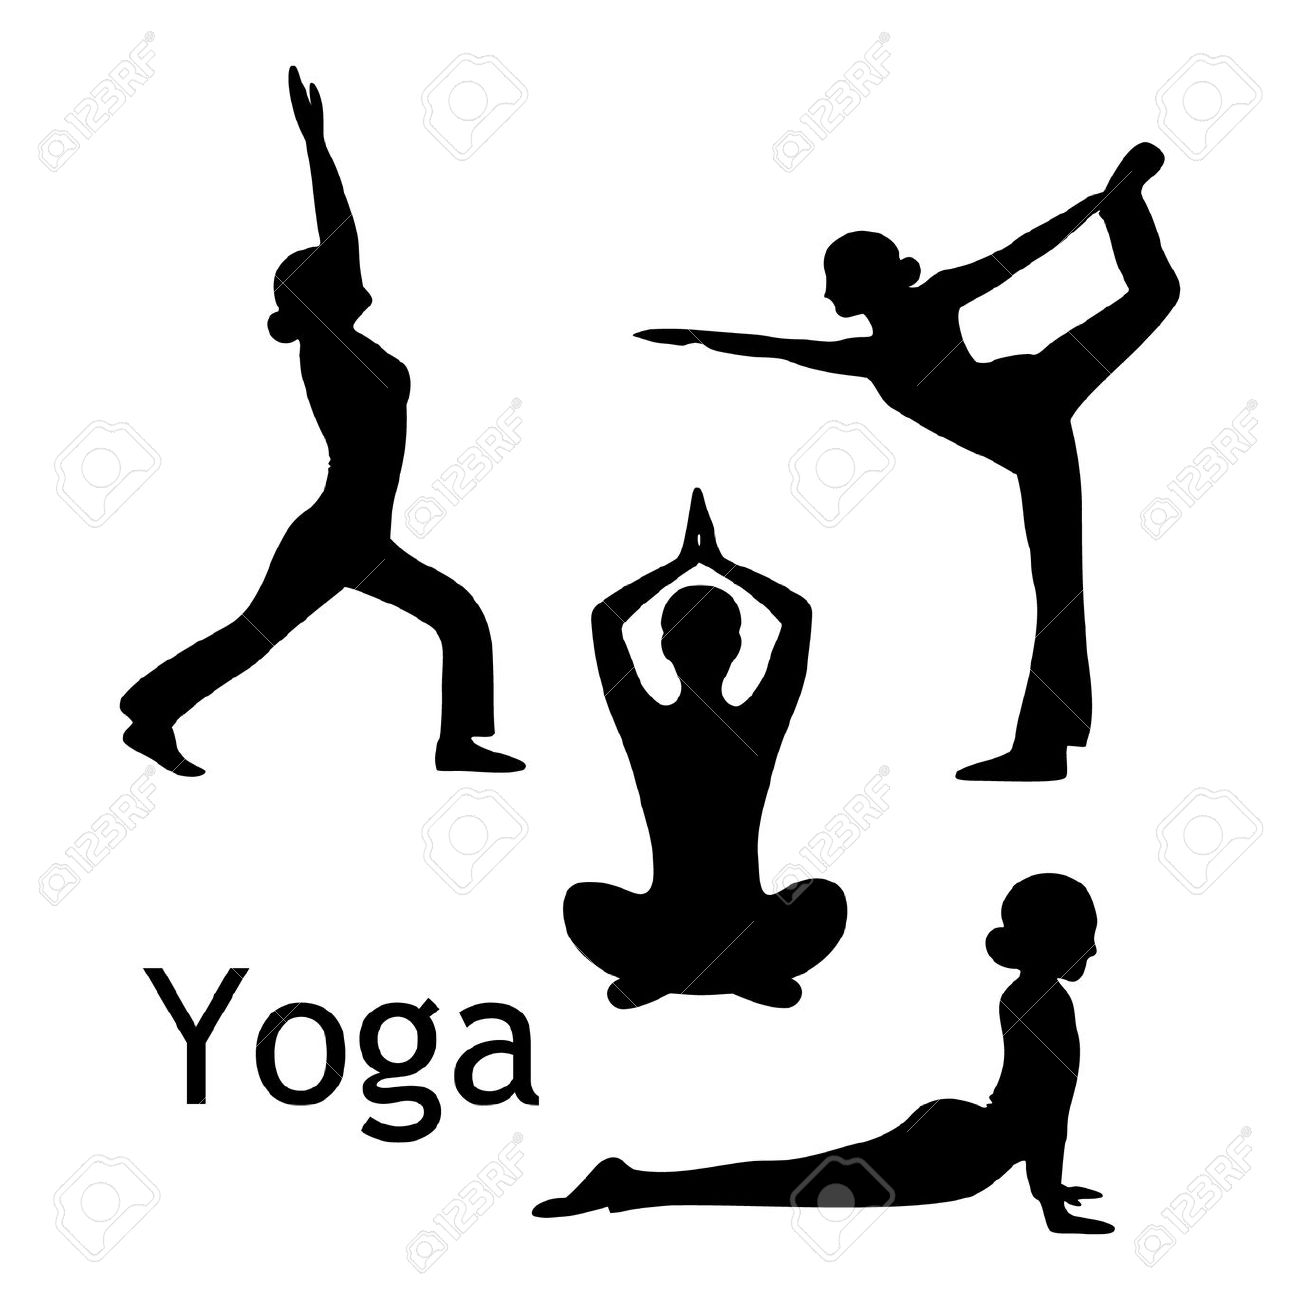 Download Yoga Pose Clipart